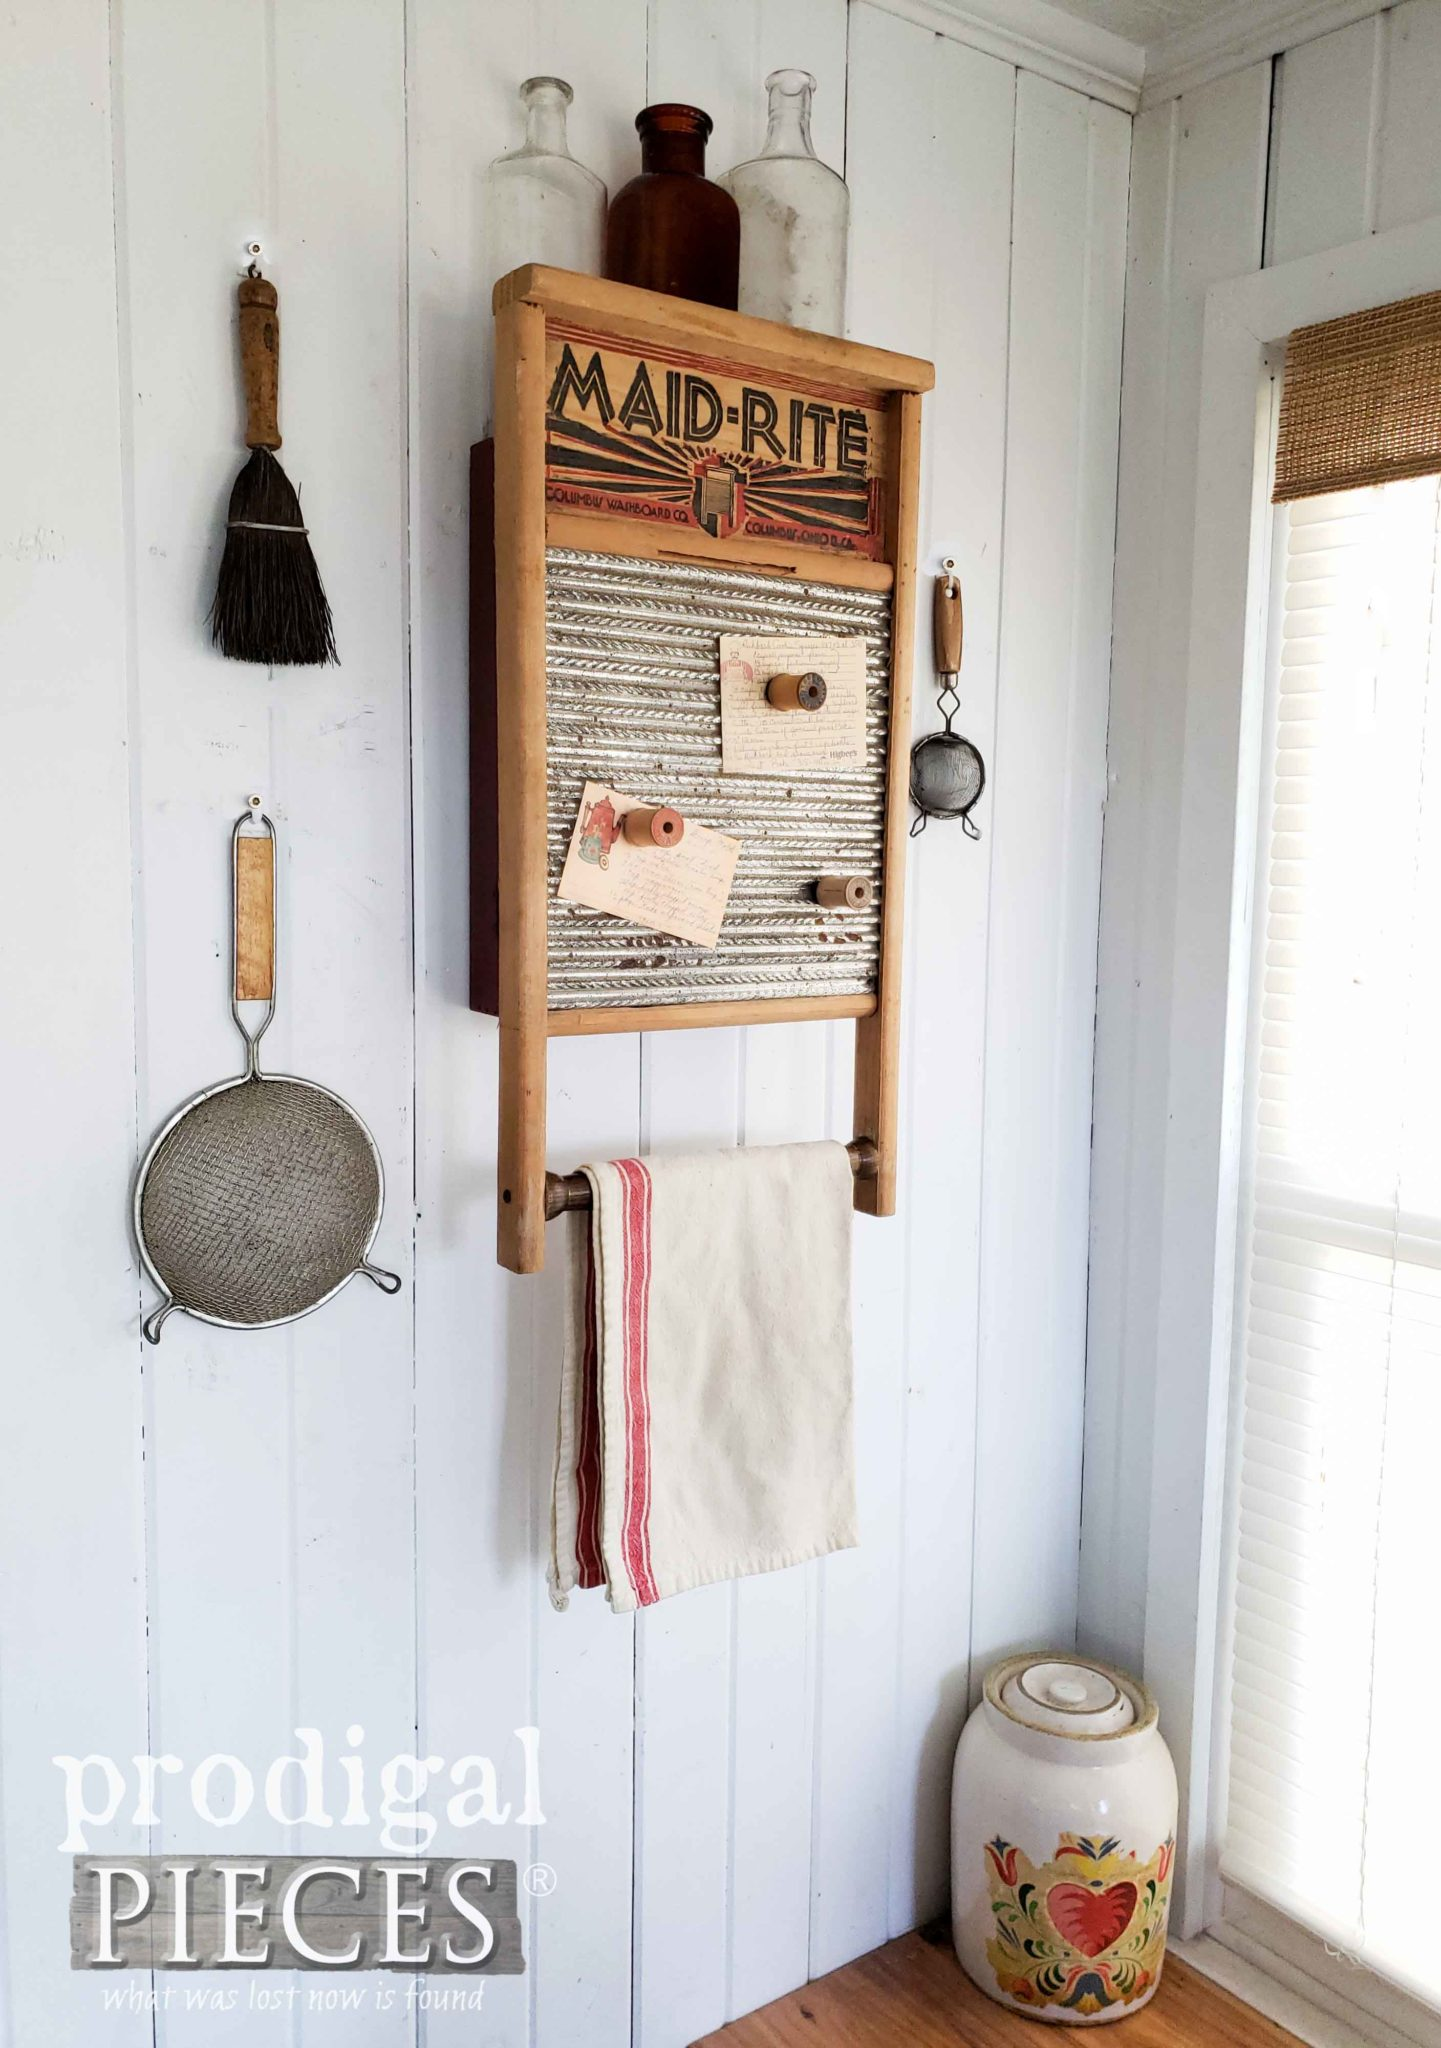 DIY Upcycled Washboard Cupboard for your Home Decor | by Larissa of Prodigal Pieces | prodigalpieces.com #prodigalpieces #diy #farmhouse #vintage #home #homedecor